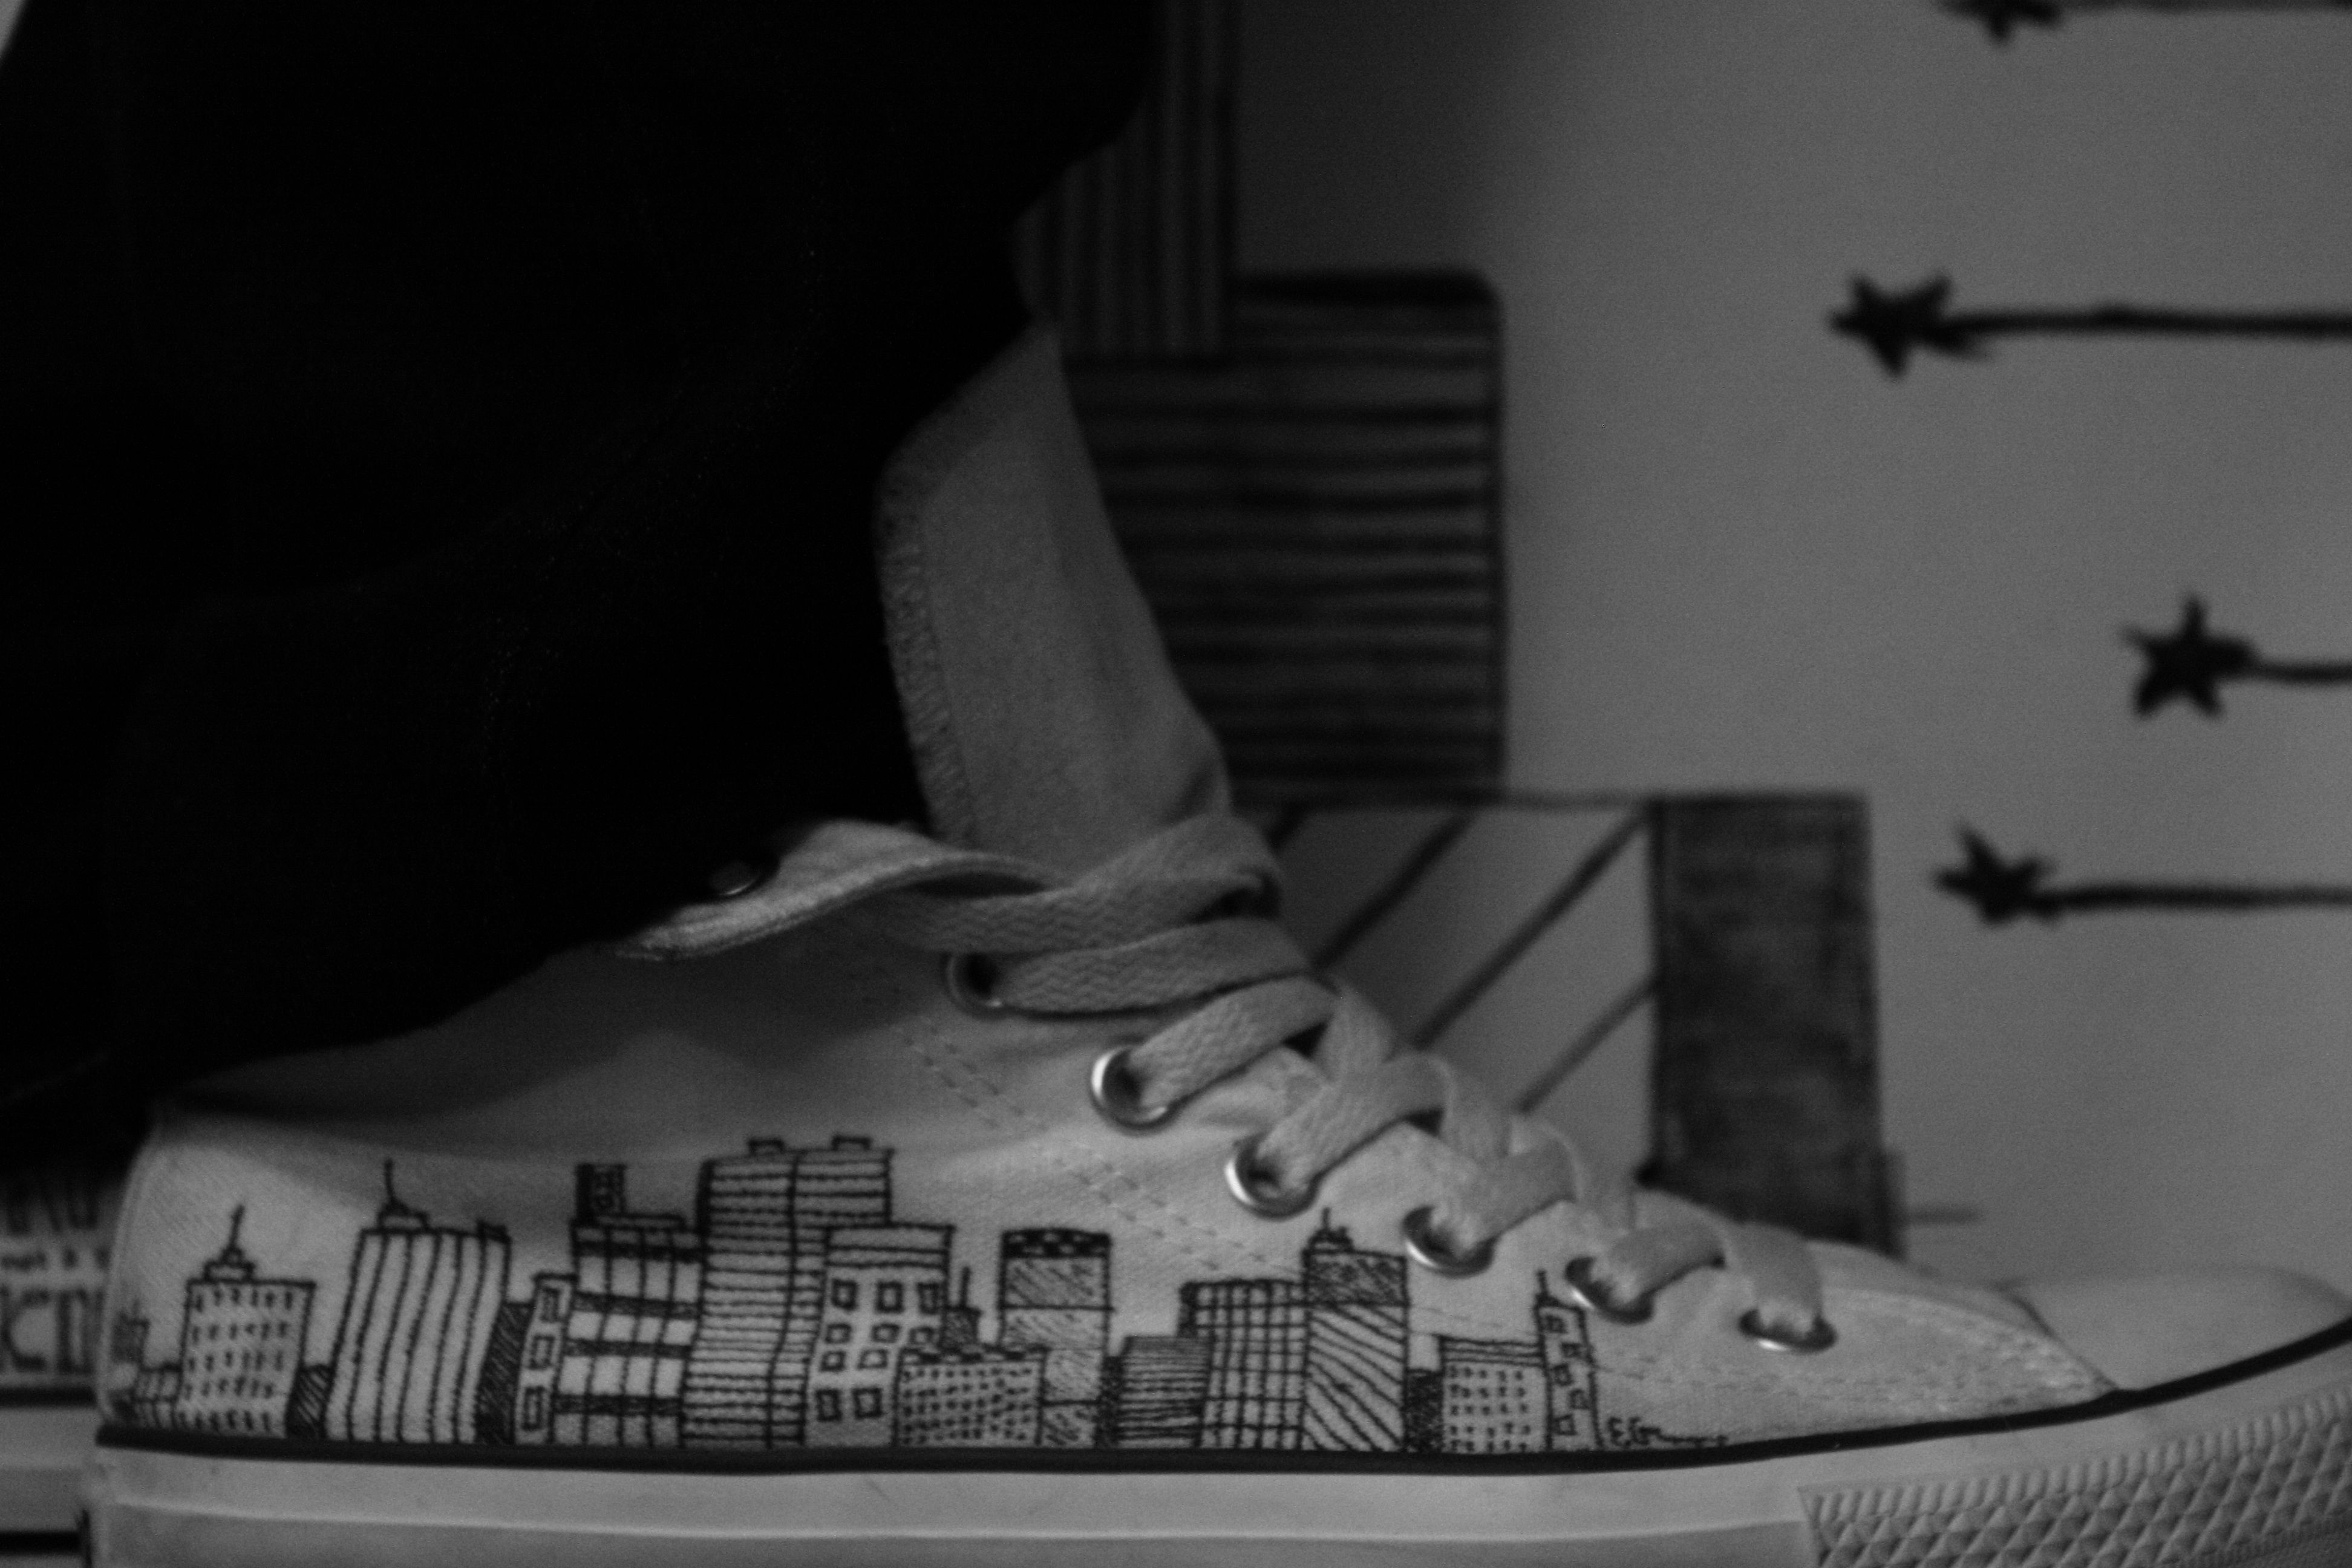 990bb89a4e06 drew this in sharpie on my white converse